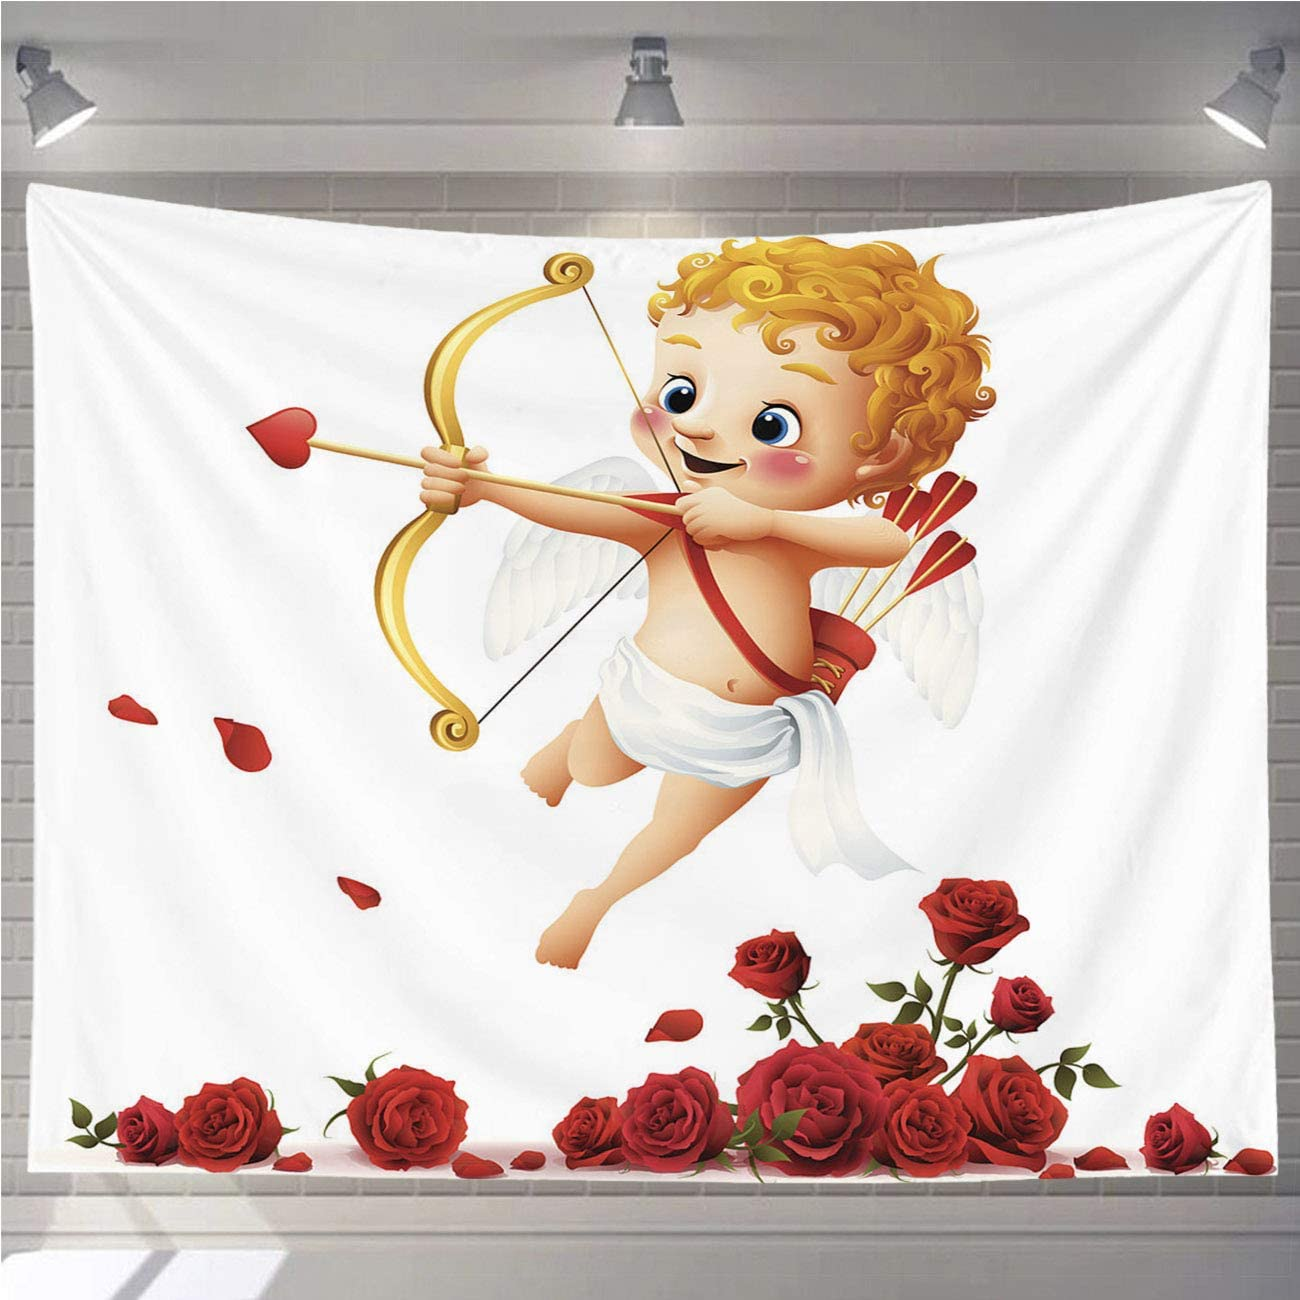 OTTOSUN Cupid Tapestry Wall Hanging,Cupid Roses,Wall Art for Living Room Bedroom Home Decor,80x60 in